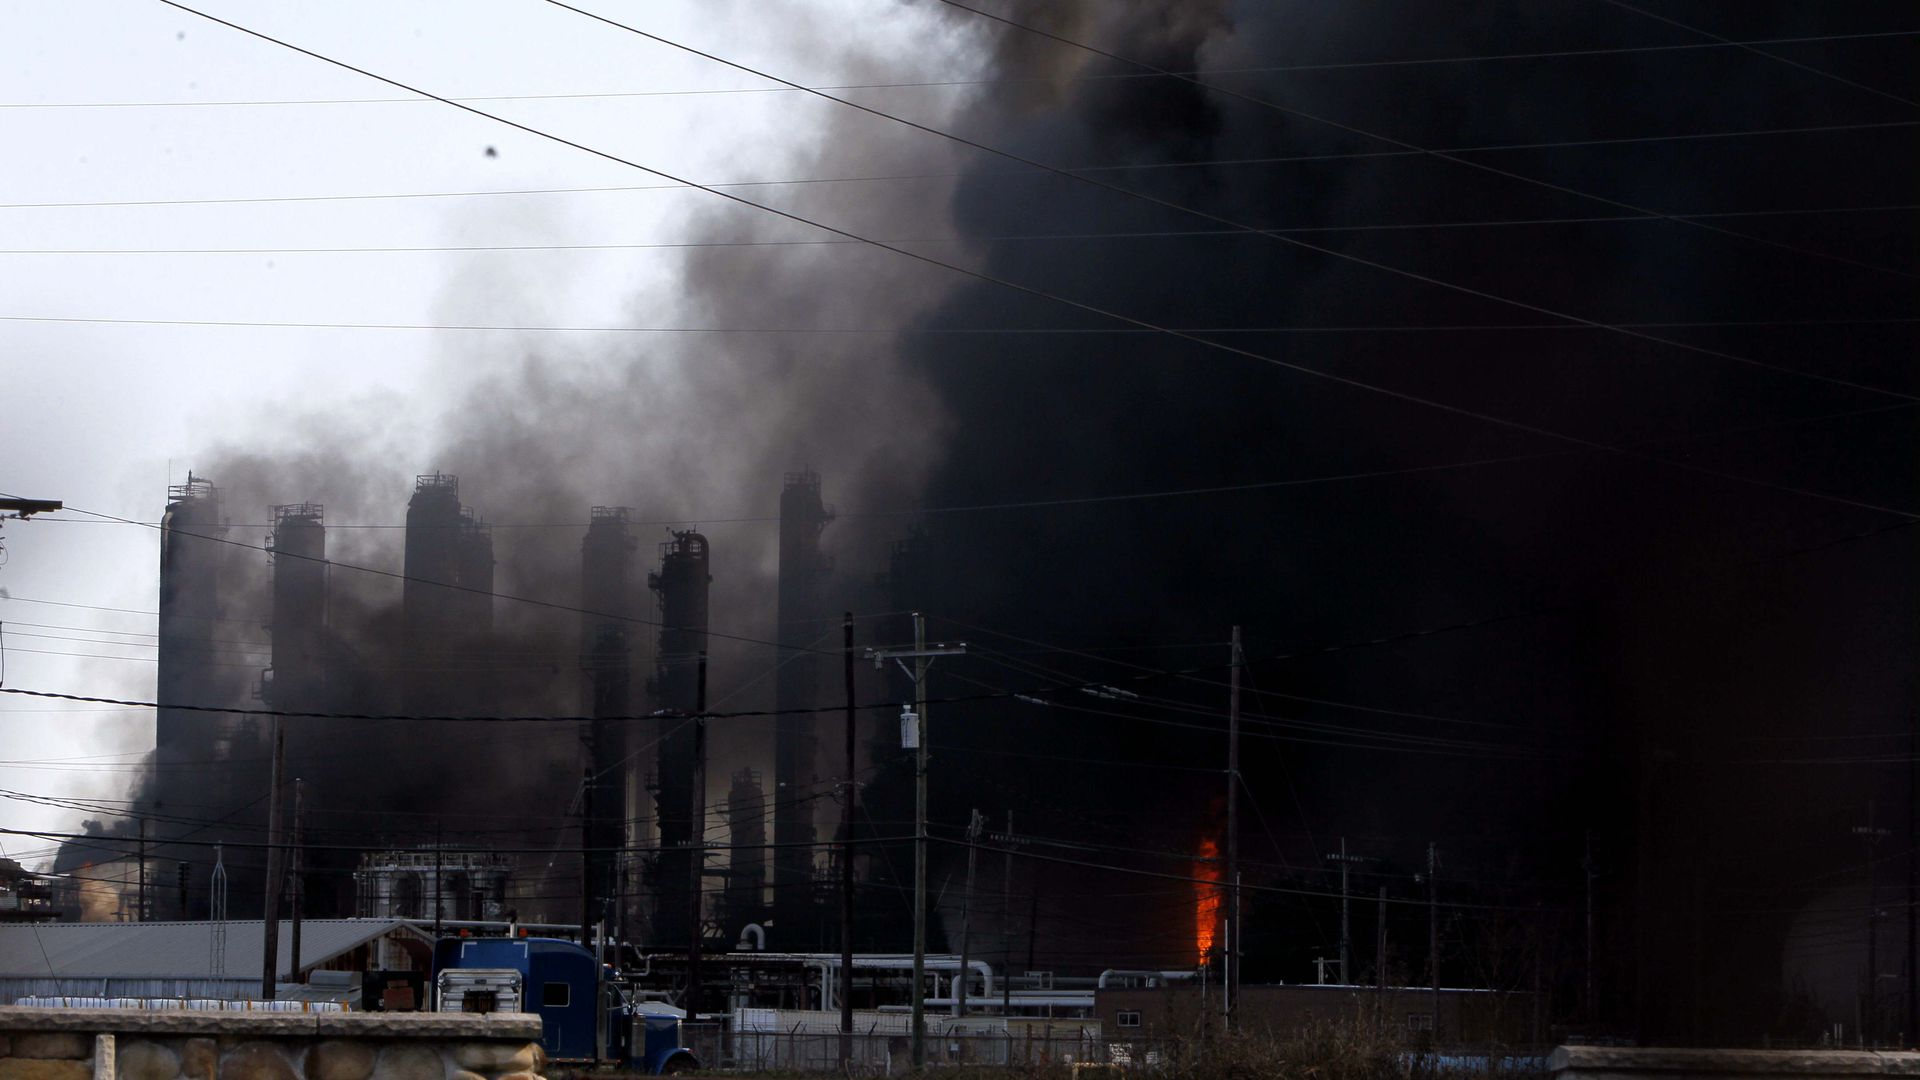 A chemical plant of TPC Group is shrouded by smoke as the fire continues in Port Neches, about 150 km east of downtown Houston, Texas